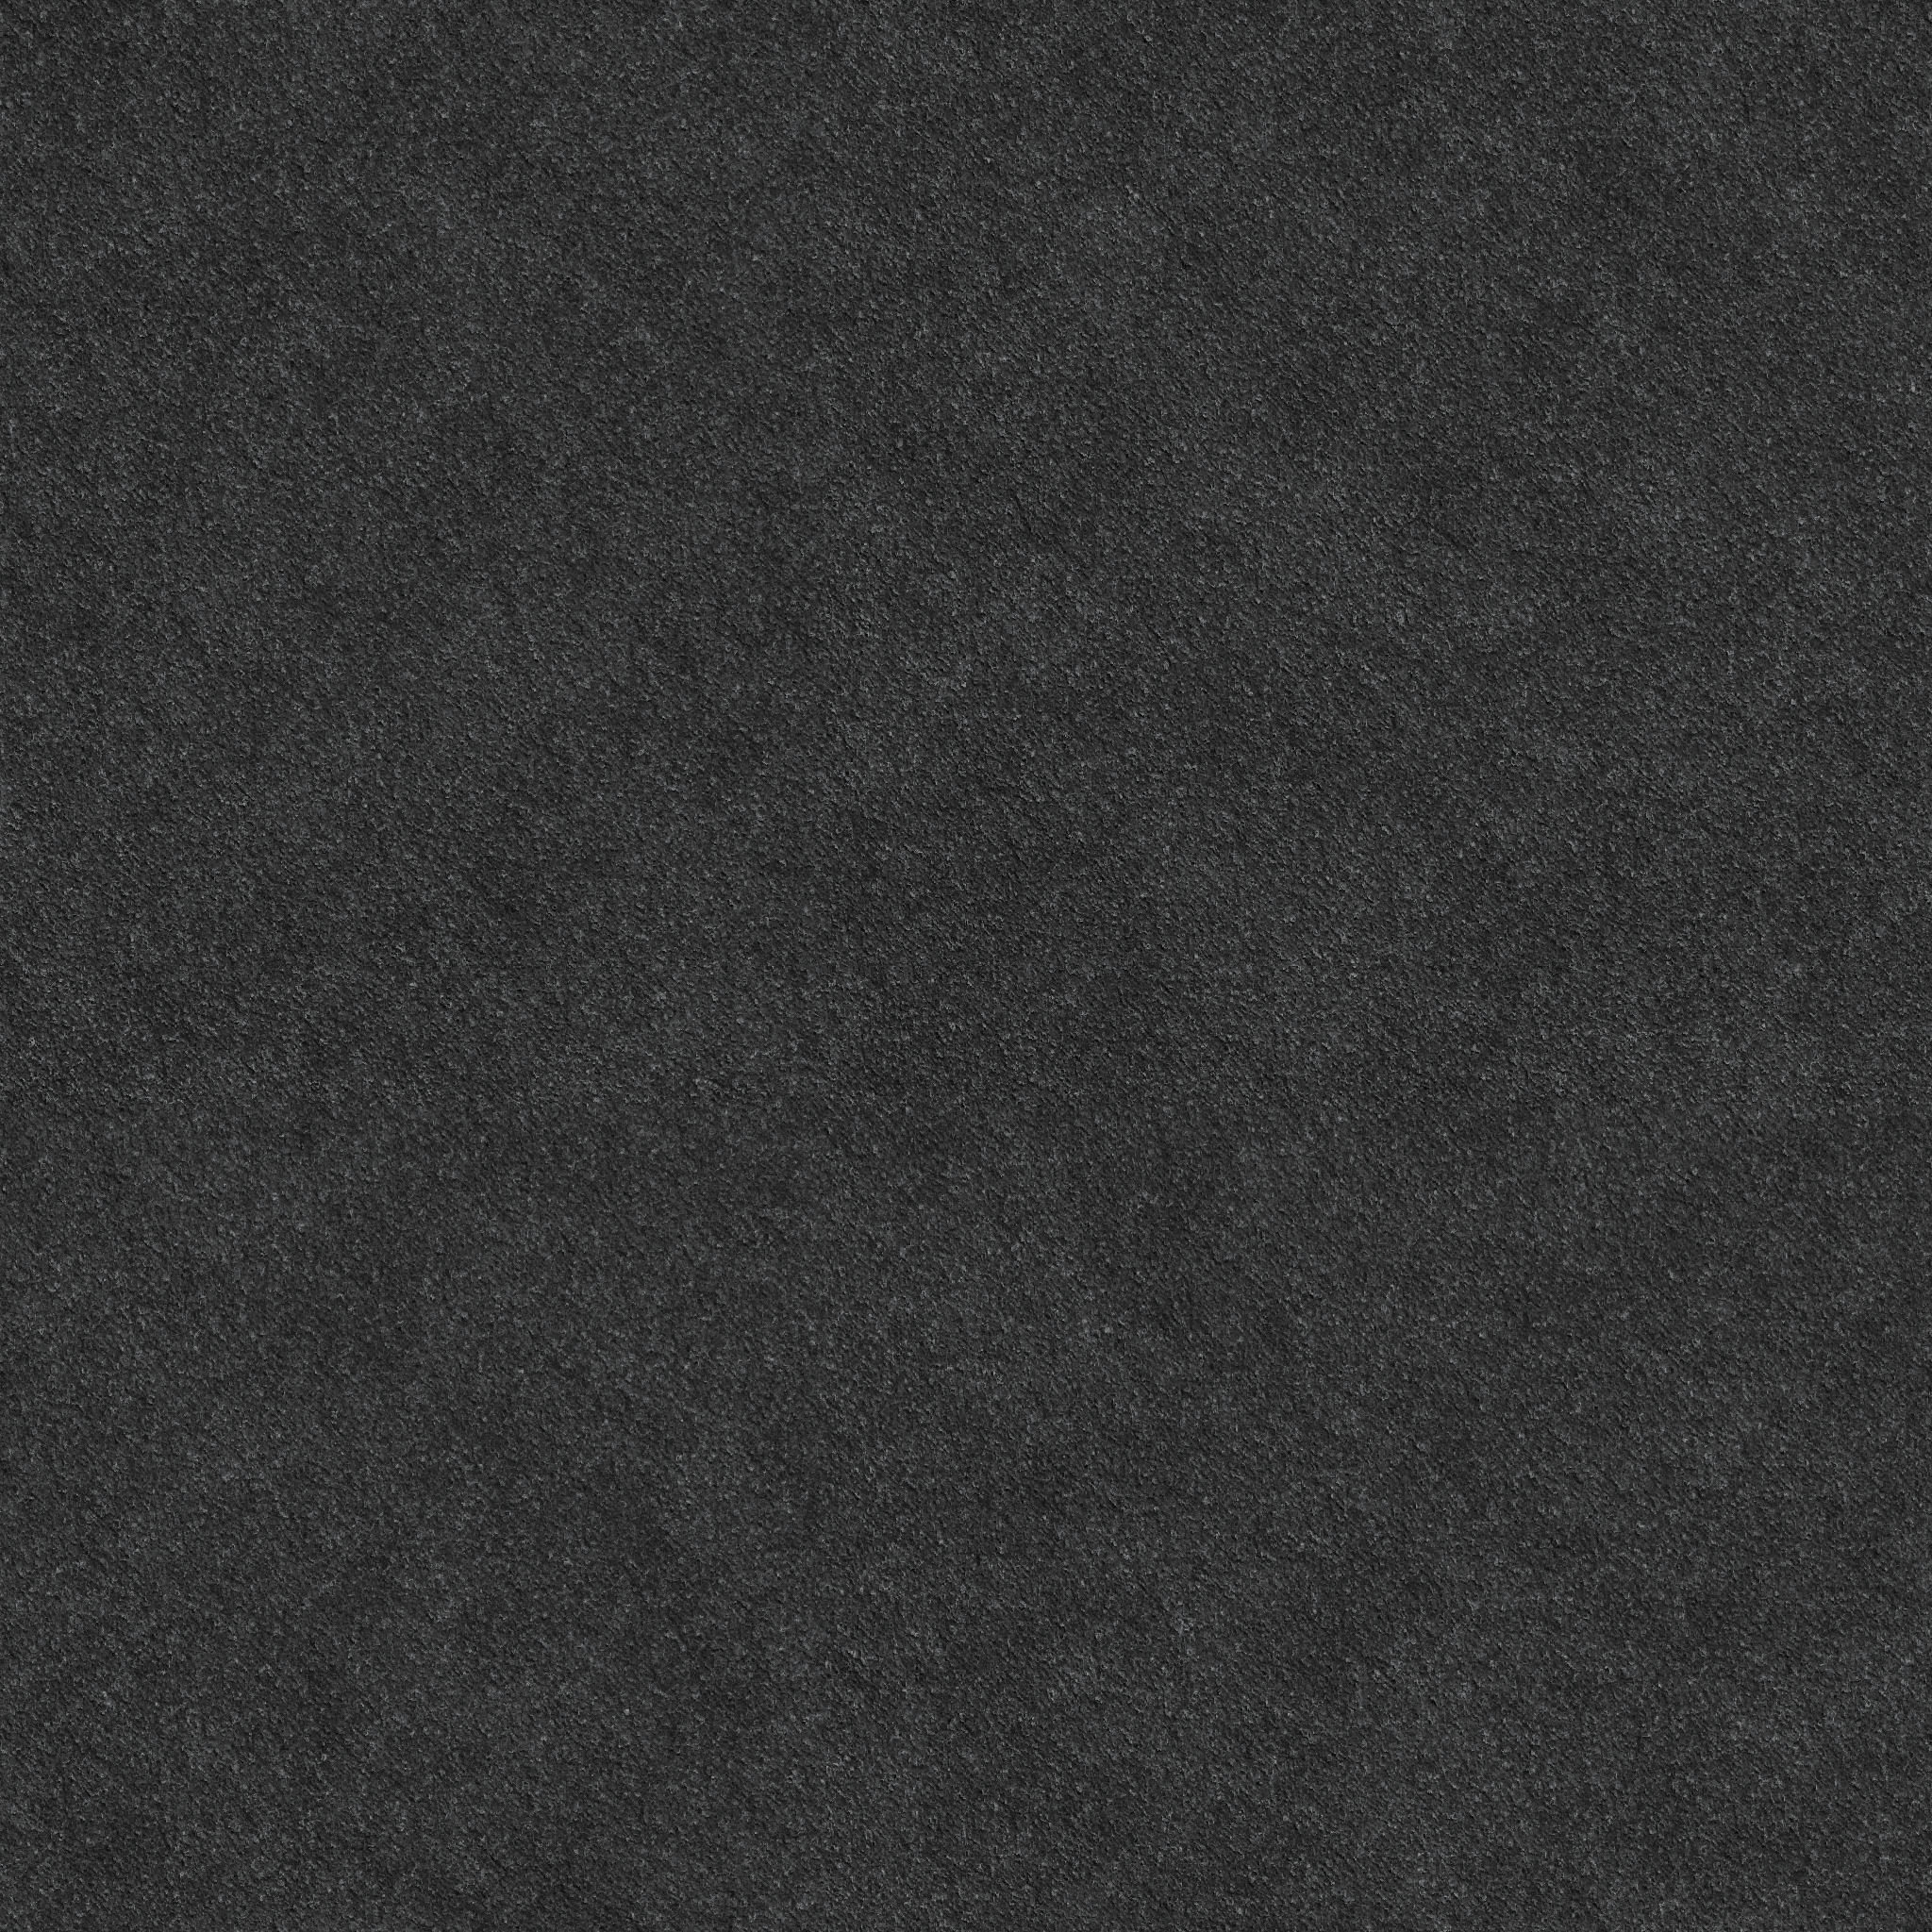 Road Dark Stone Texture Tileable 2048x2048 By Fabooguy